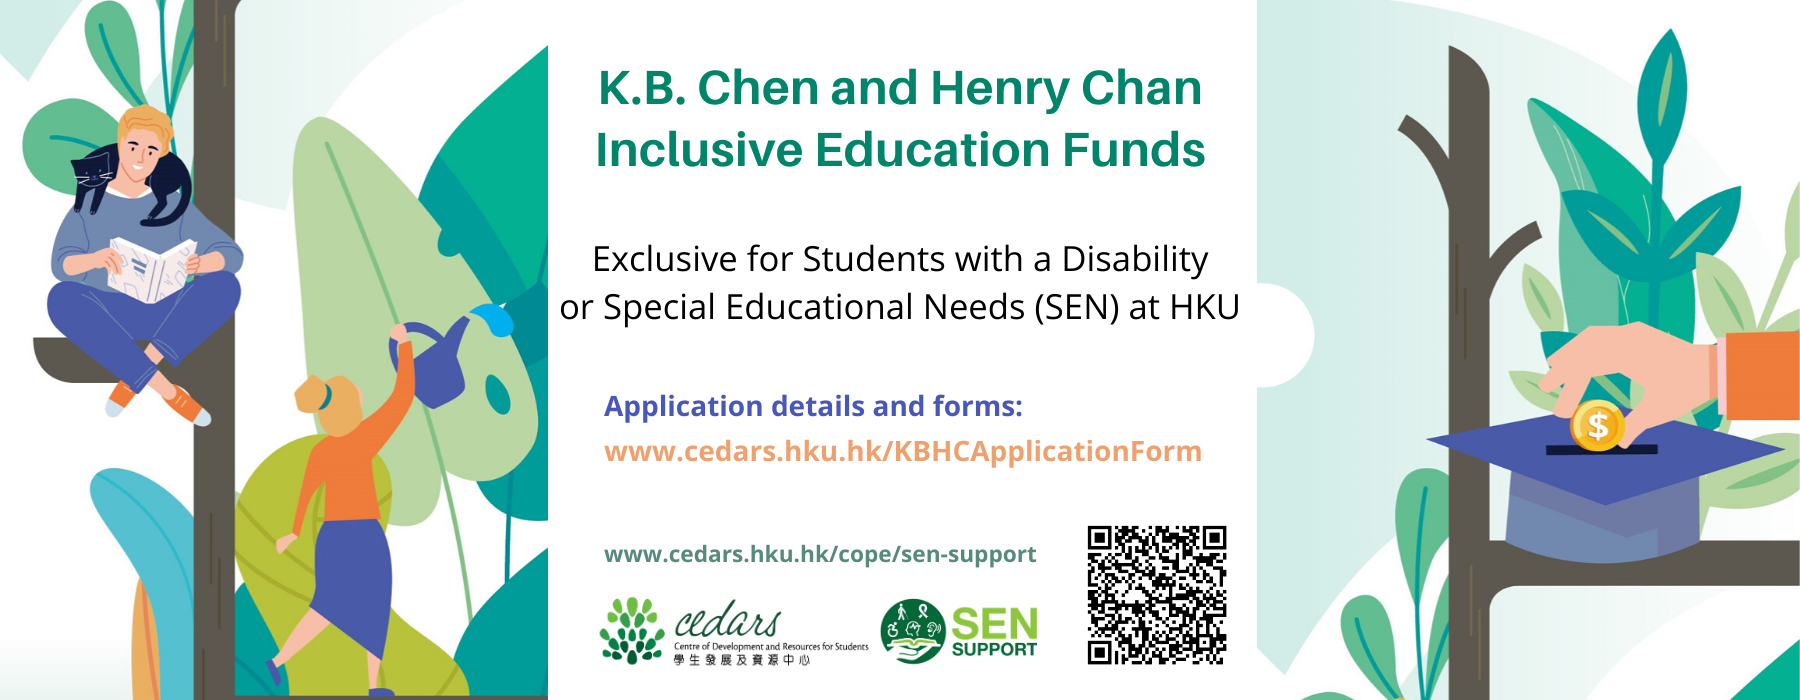 K.B. Chan and Henry Chan Inclusive Education Fund